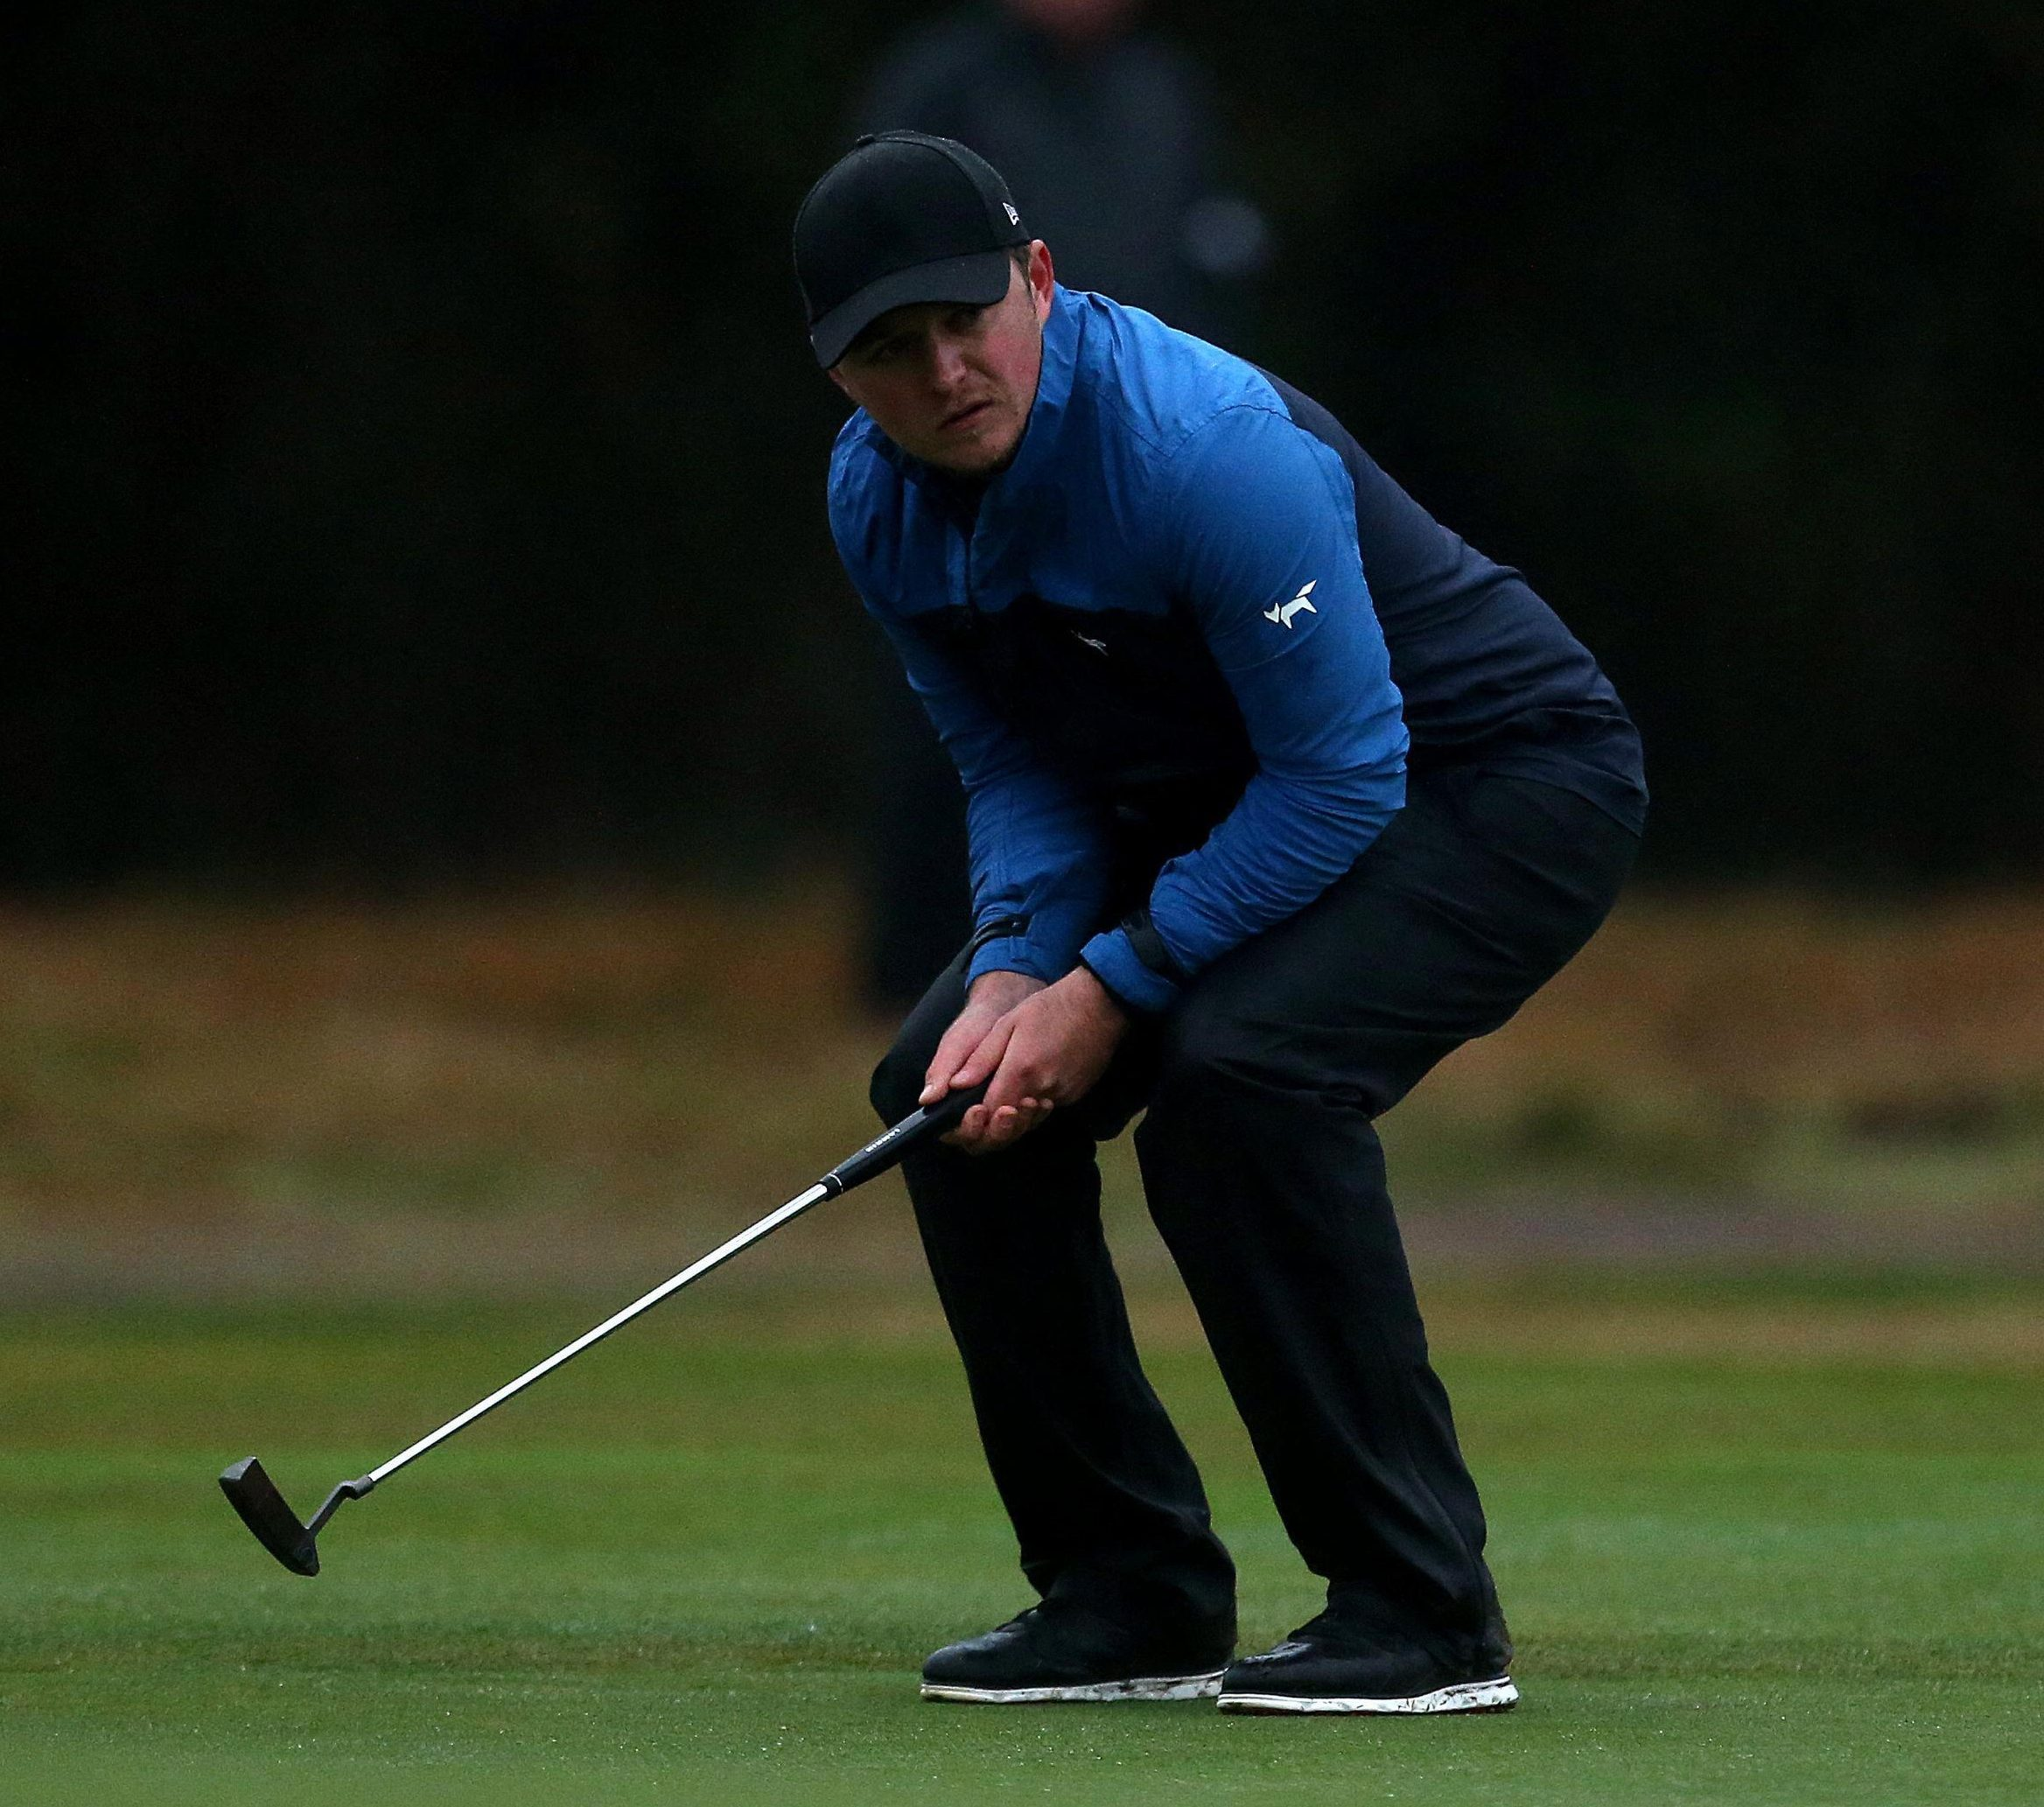 Eddie Pepperell found cold comfort when his mum gave him mittens for his hands